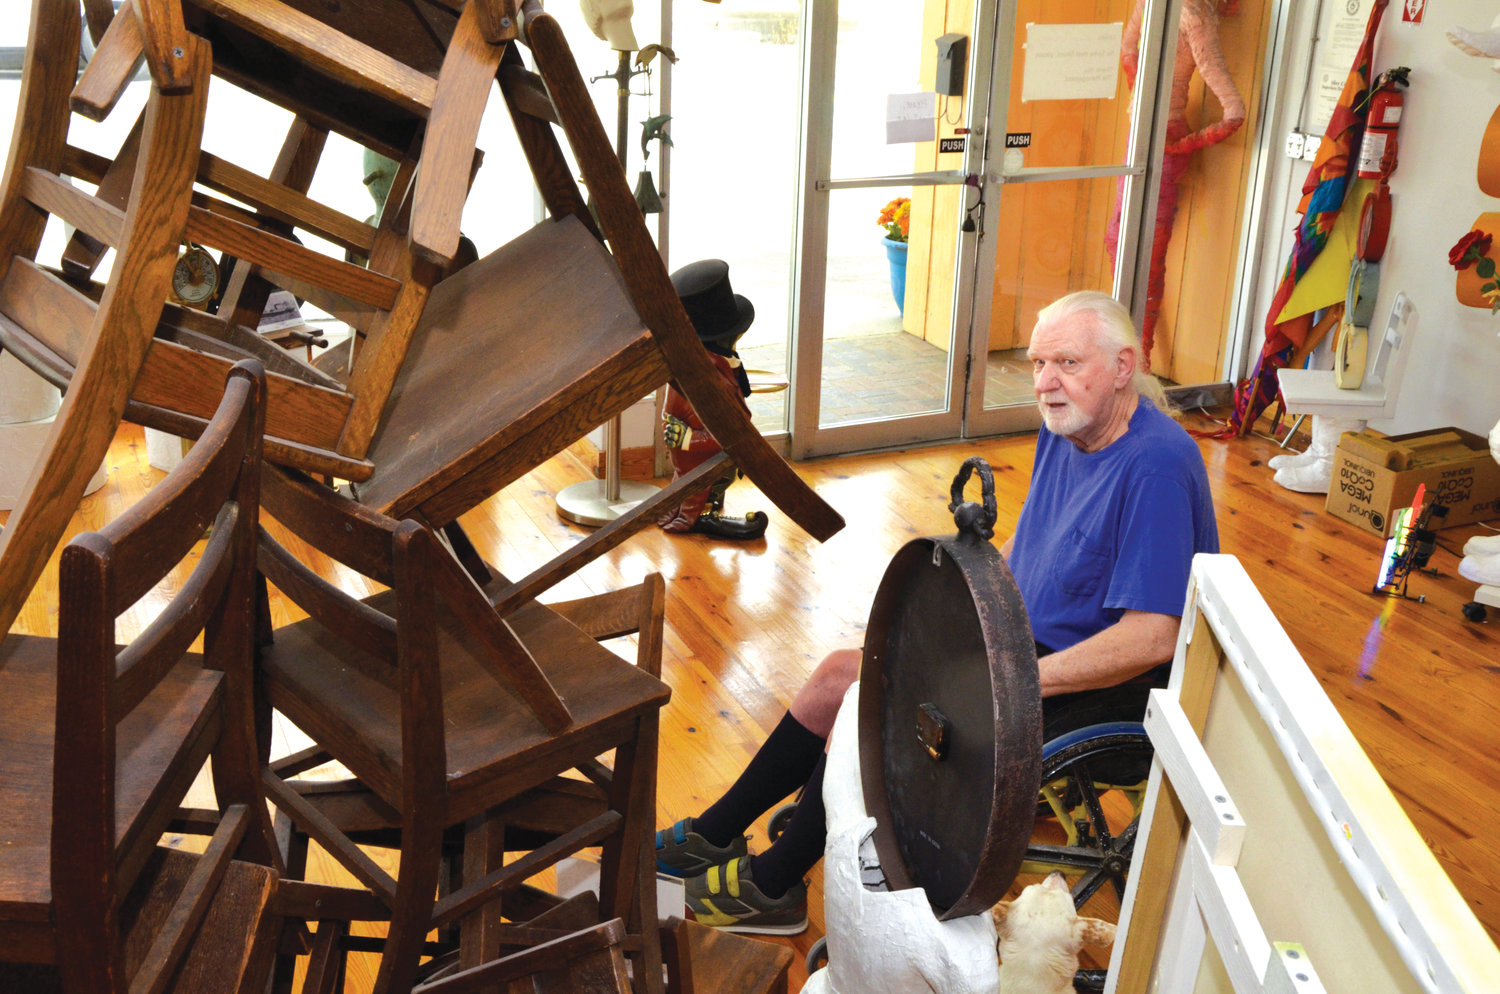 Roger Person sits beside a wooden chair sculpture in his studio on North Chatham Street in Siler City. These school chairs once were used as generations of students went through school in Siler City. Now they are used to teach creativity and art.